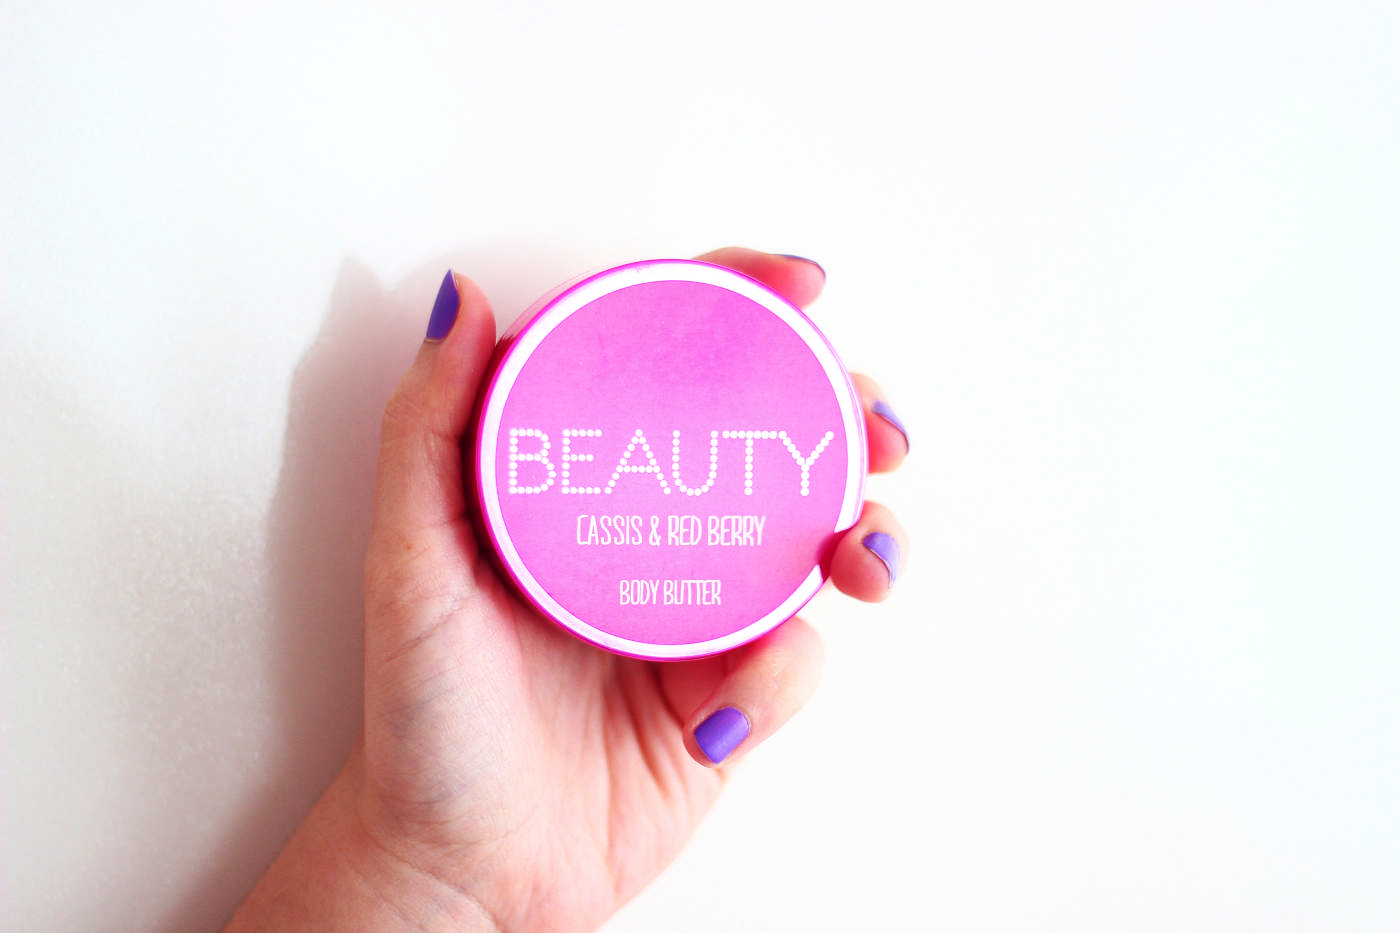 primark ps love beauty - body butter